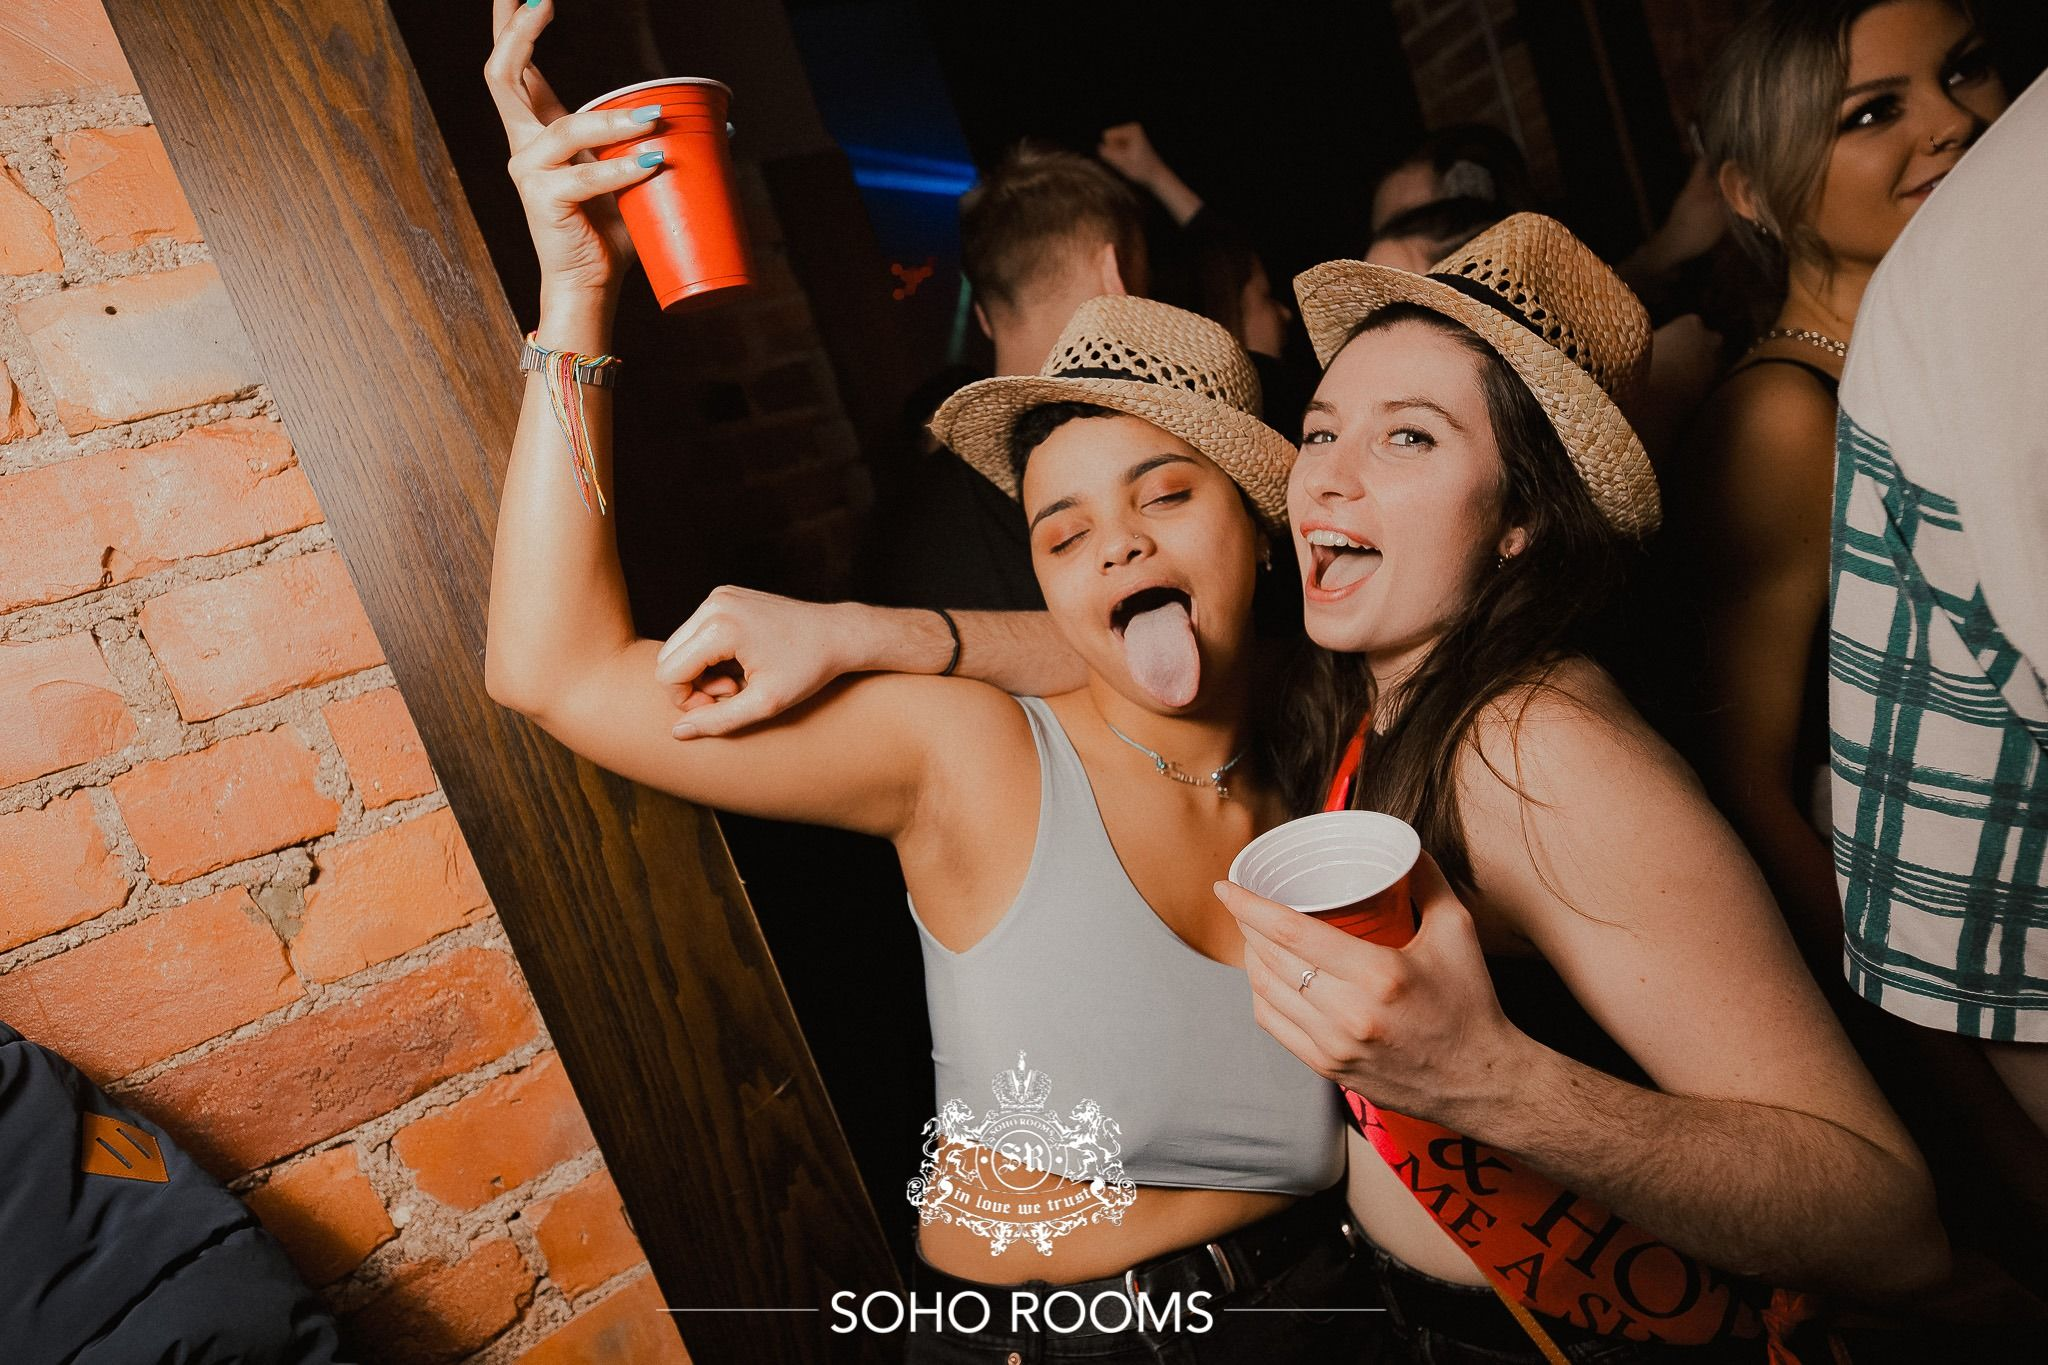 Image may contain: Finger, Night Life, Skin, Hat, Human, Person, Apparel, Clothing